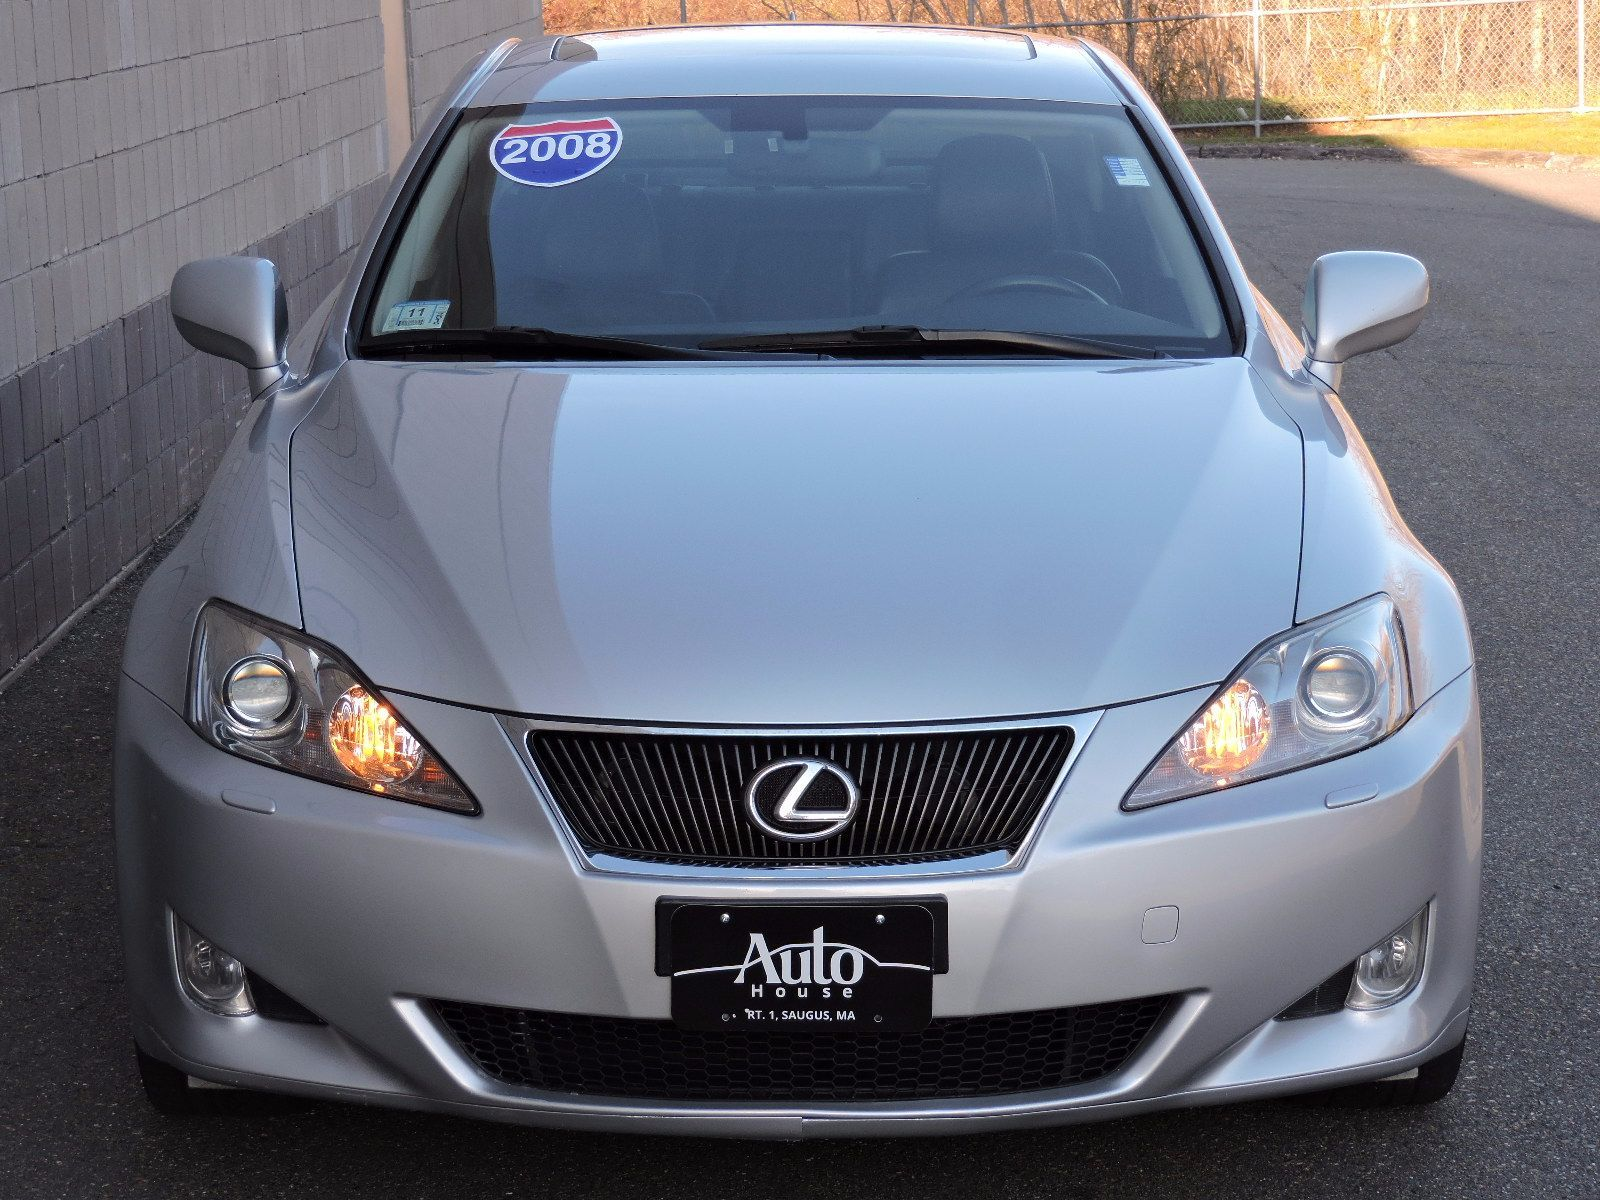 Used 2008 Lexus IS 250 at Auto House USA Saugus